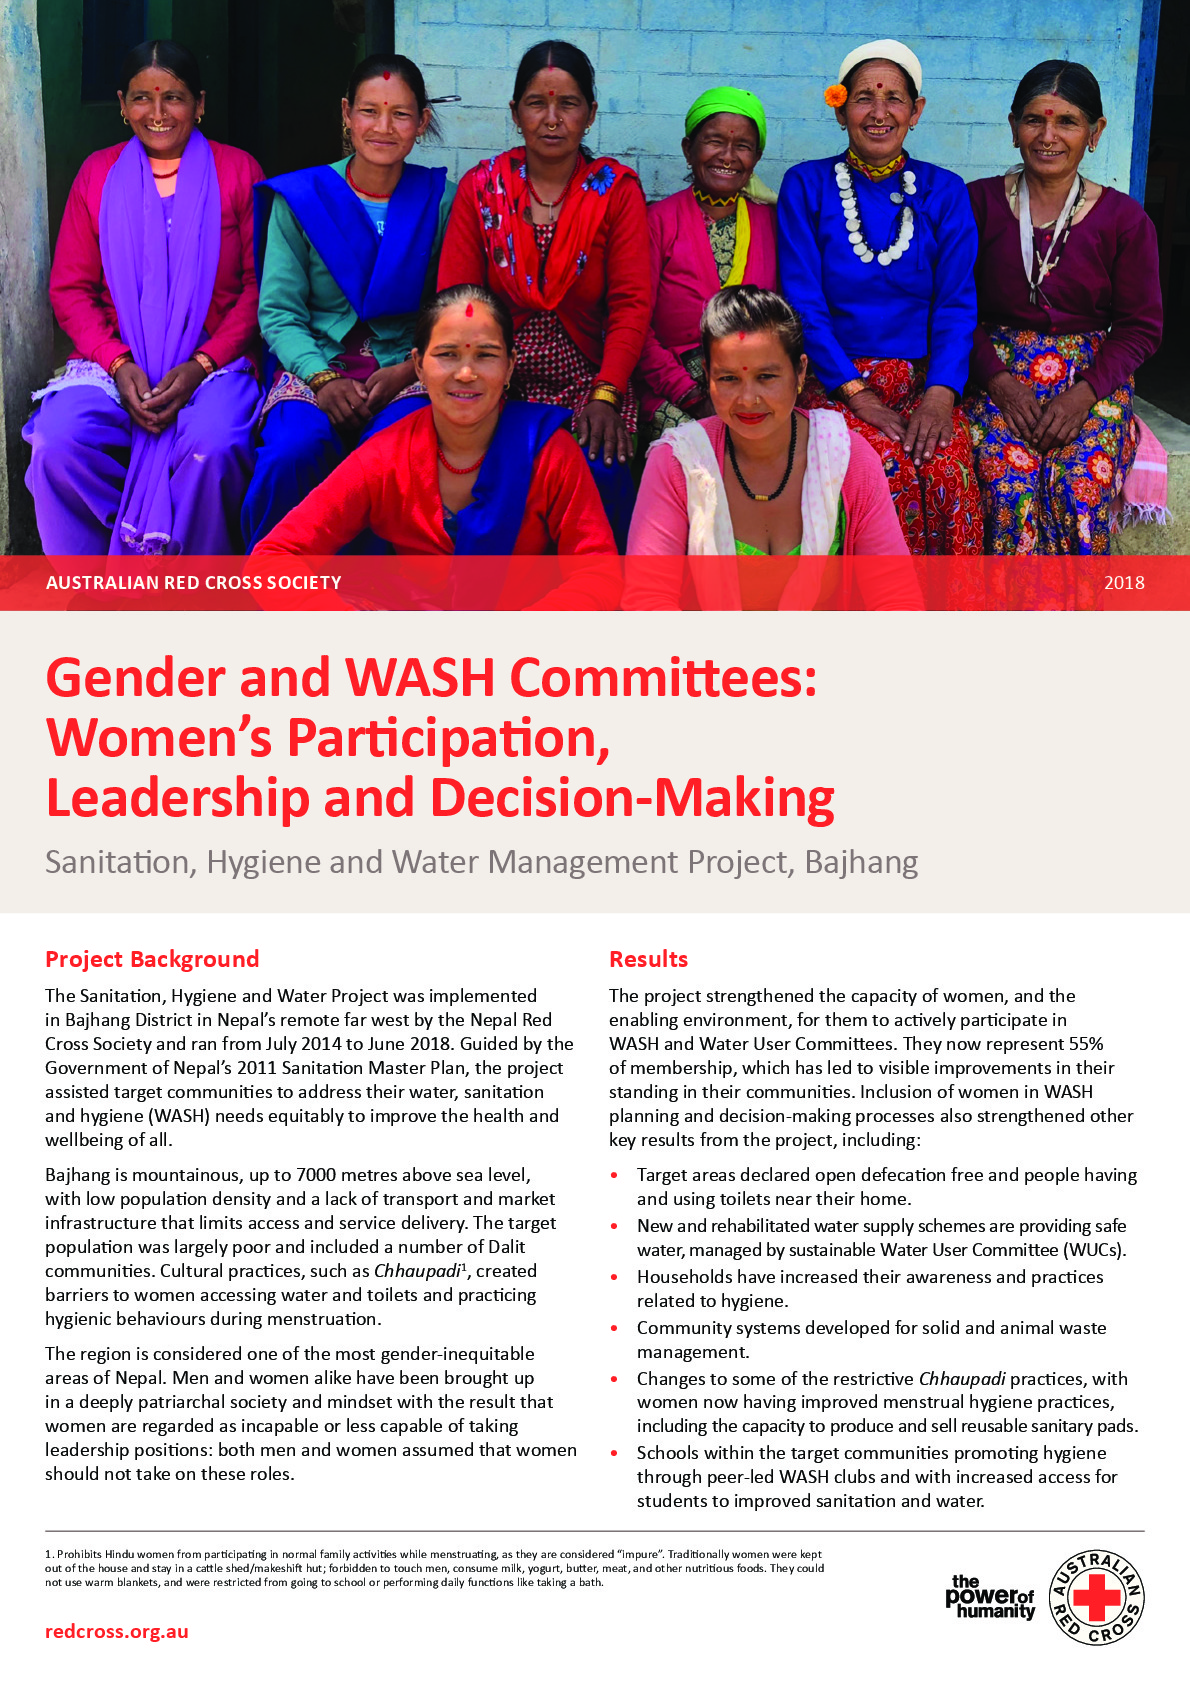 Gender and WASH Committees